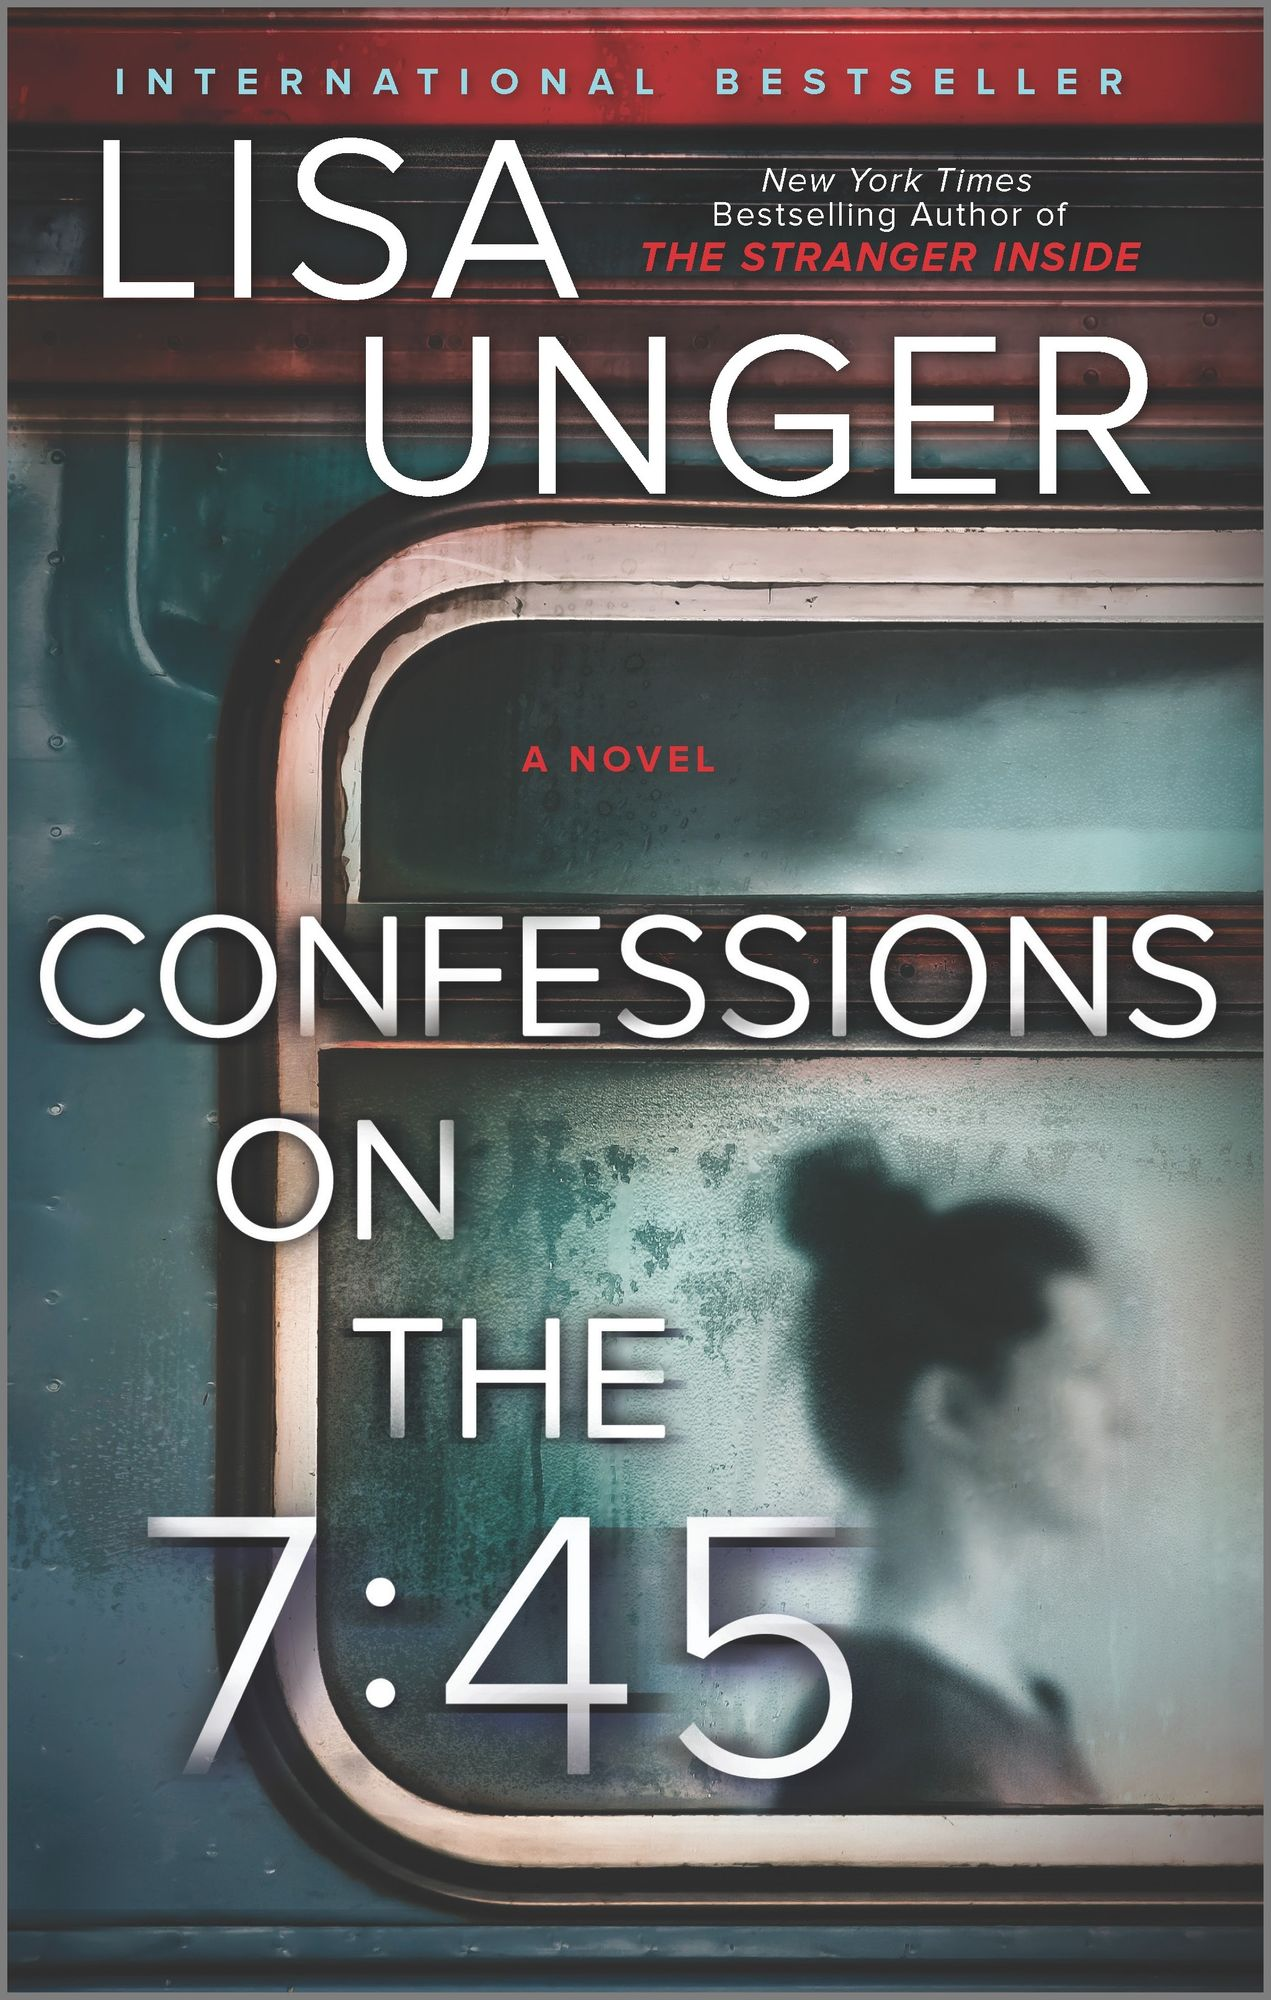 Confessions on the 7:45 by Lisa Unger